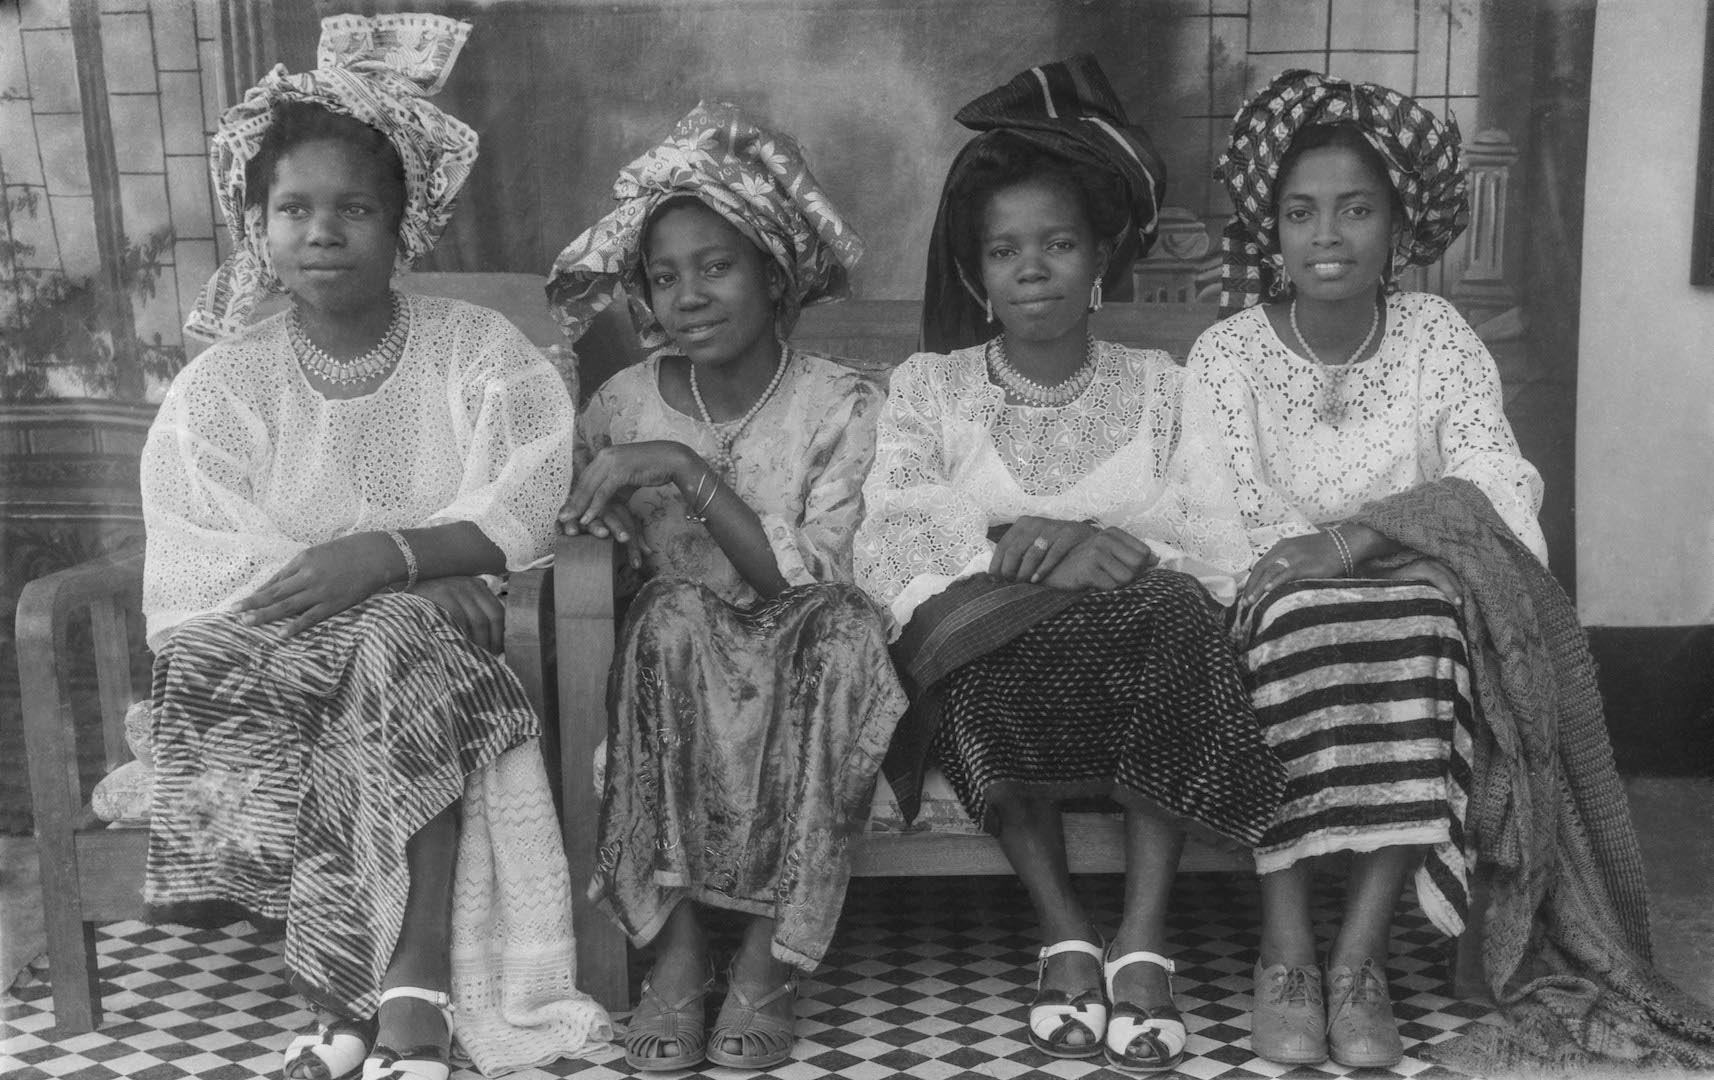 A portrait of four sisters from the Ideal Photo Studio in Benin City in 1950.